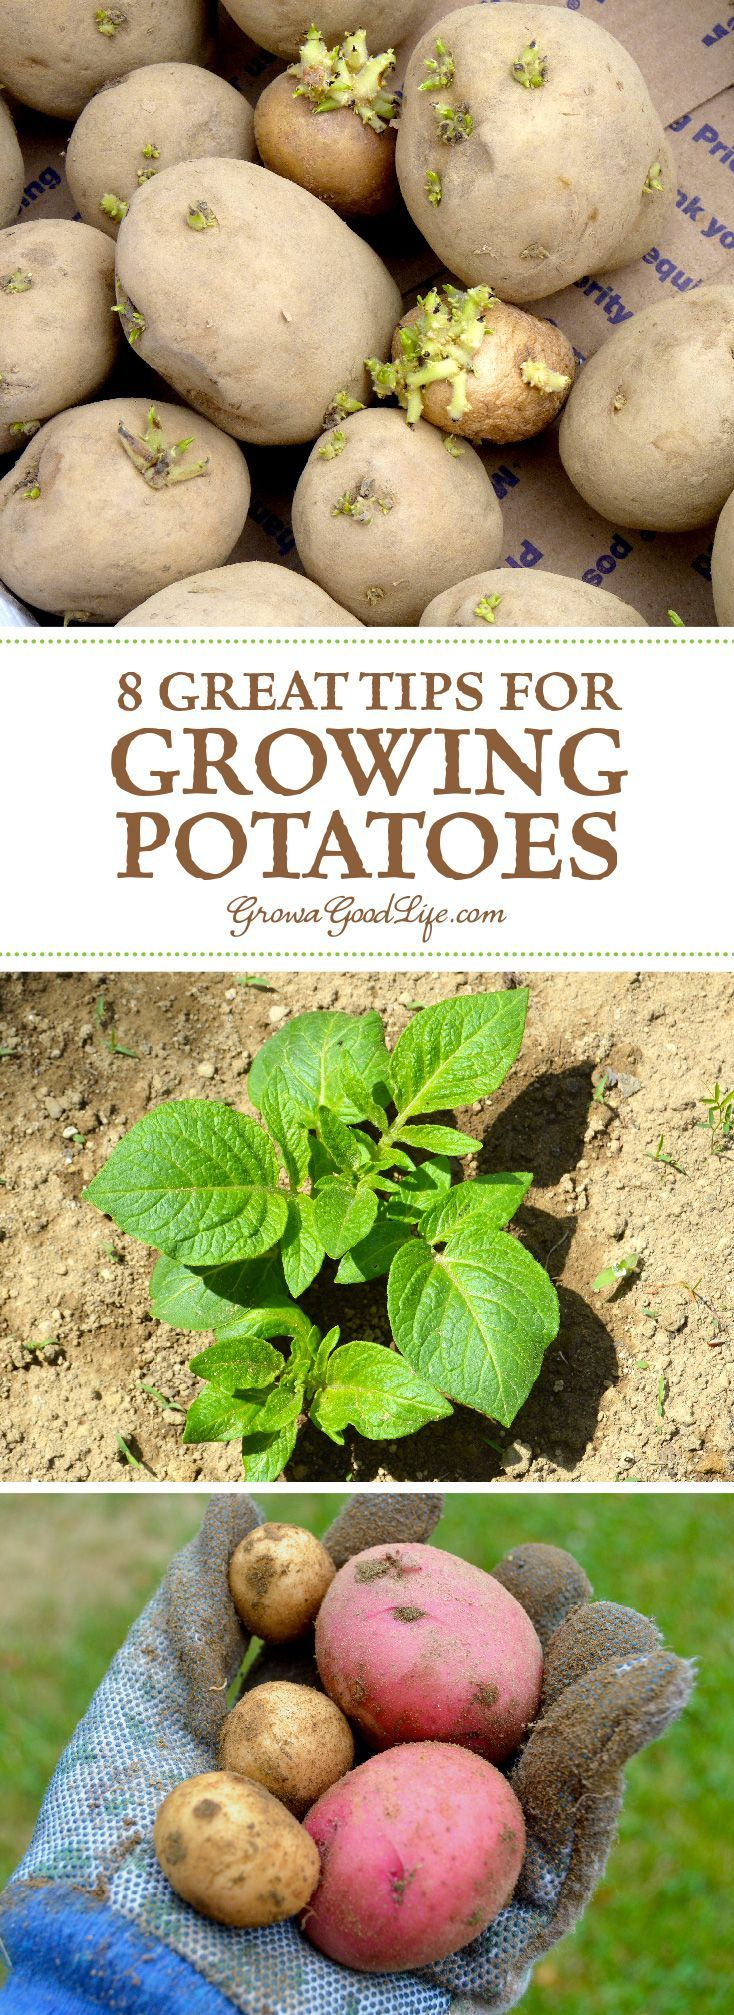 Marvellous  Best Images About Garden Root Veggies  On Pinterest  With Hot  Great Tips For Growing Potatoes Growing Vegetablesvegetables  Gardenveggiespotatoes  With Breathtaking Garden Route Trip Planner Also Www Garden Roses Co Uk In Addition Kensington Palace Gardens Property And Gardens Forever As Well As Regent Gardens Additionally Jade Garden Birmingham From Pinterestcom With   Hot  Best Images About Garden Root Veggies  On Pinterest  With Breathtaking  Great Tips For Growing Potatoes Growing Vegetablesvegetables  Gardenveggiespotatoes  And Marvellous Garden Route Trip Planner Also Www Garden Roses Co Uk In Addition Kensington Palace Gardens Property From Pinterestcom